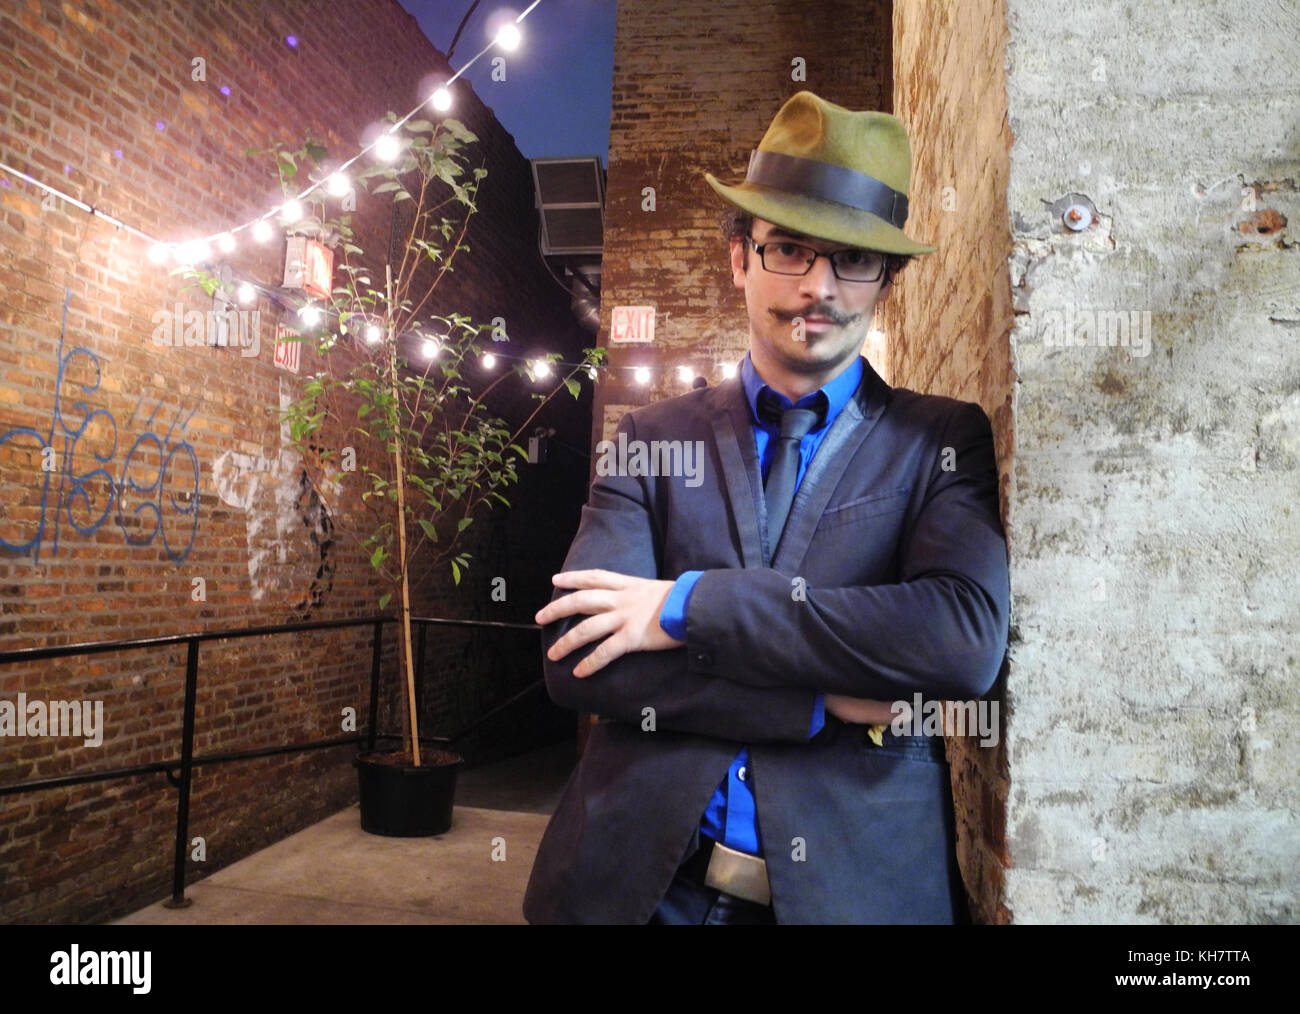 01st Nov 2017 Archive N D Austin Barkeeper And Founder Of The Threesome Tollbooth Can Be Seen In The Courtyard Of The Closed Down Restaurant Where